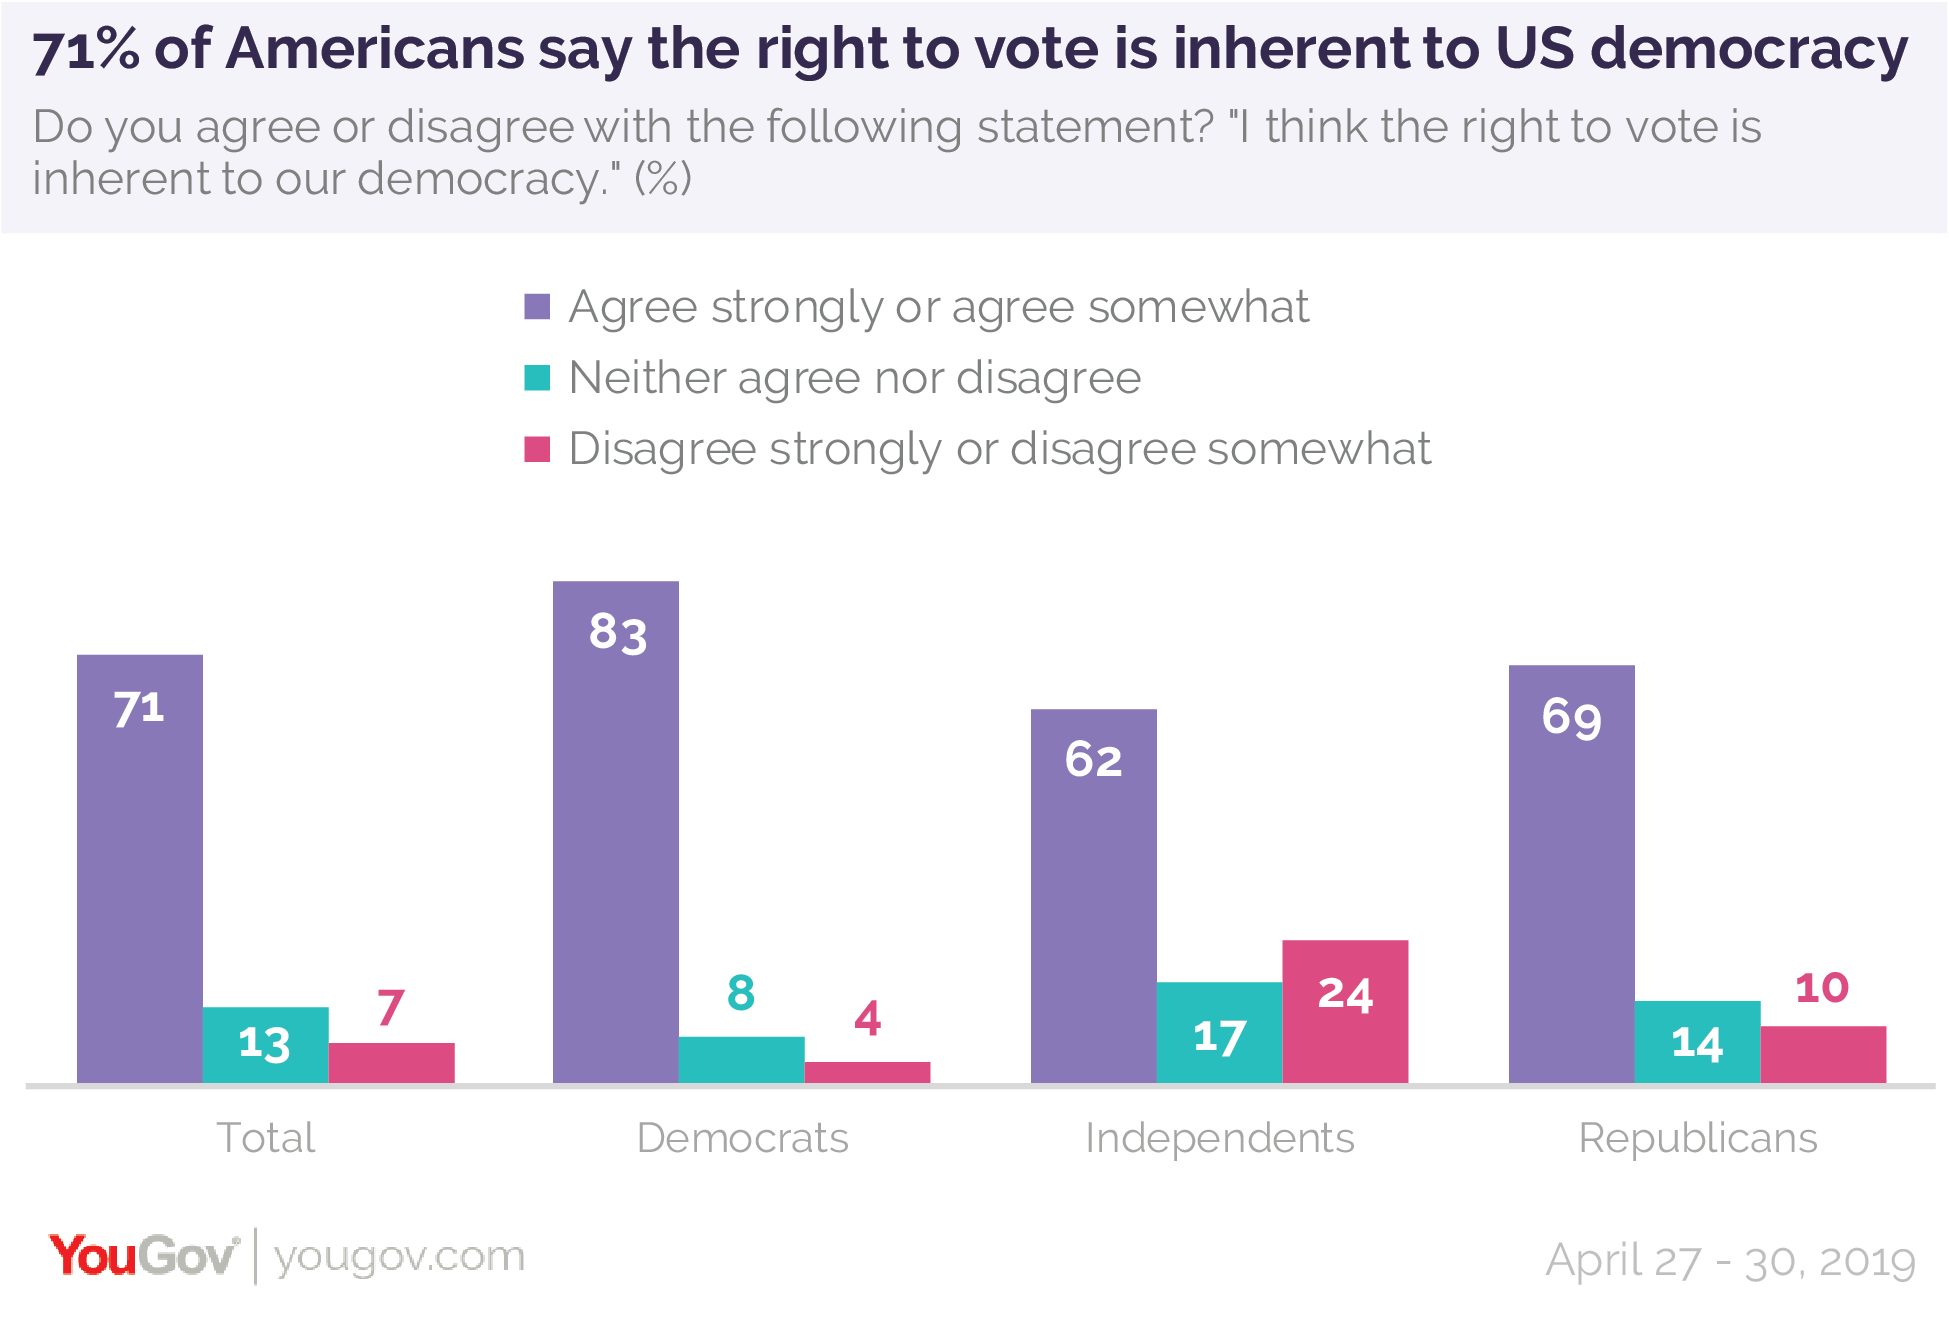 71% of Americans say the right to vote is inherent to US democracy